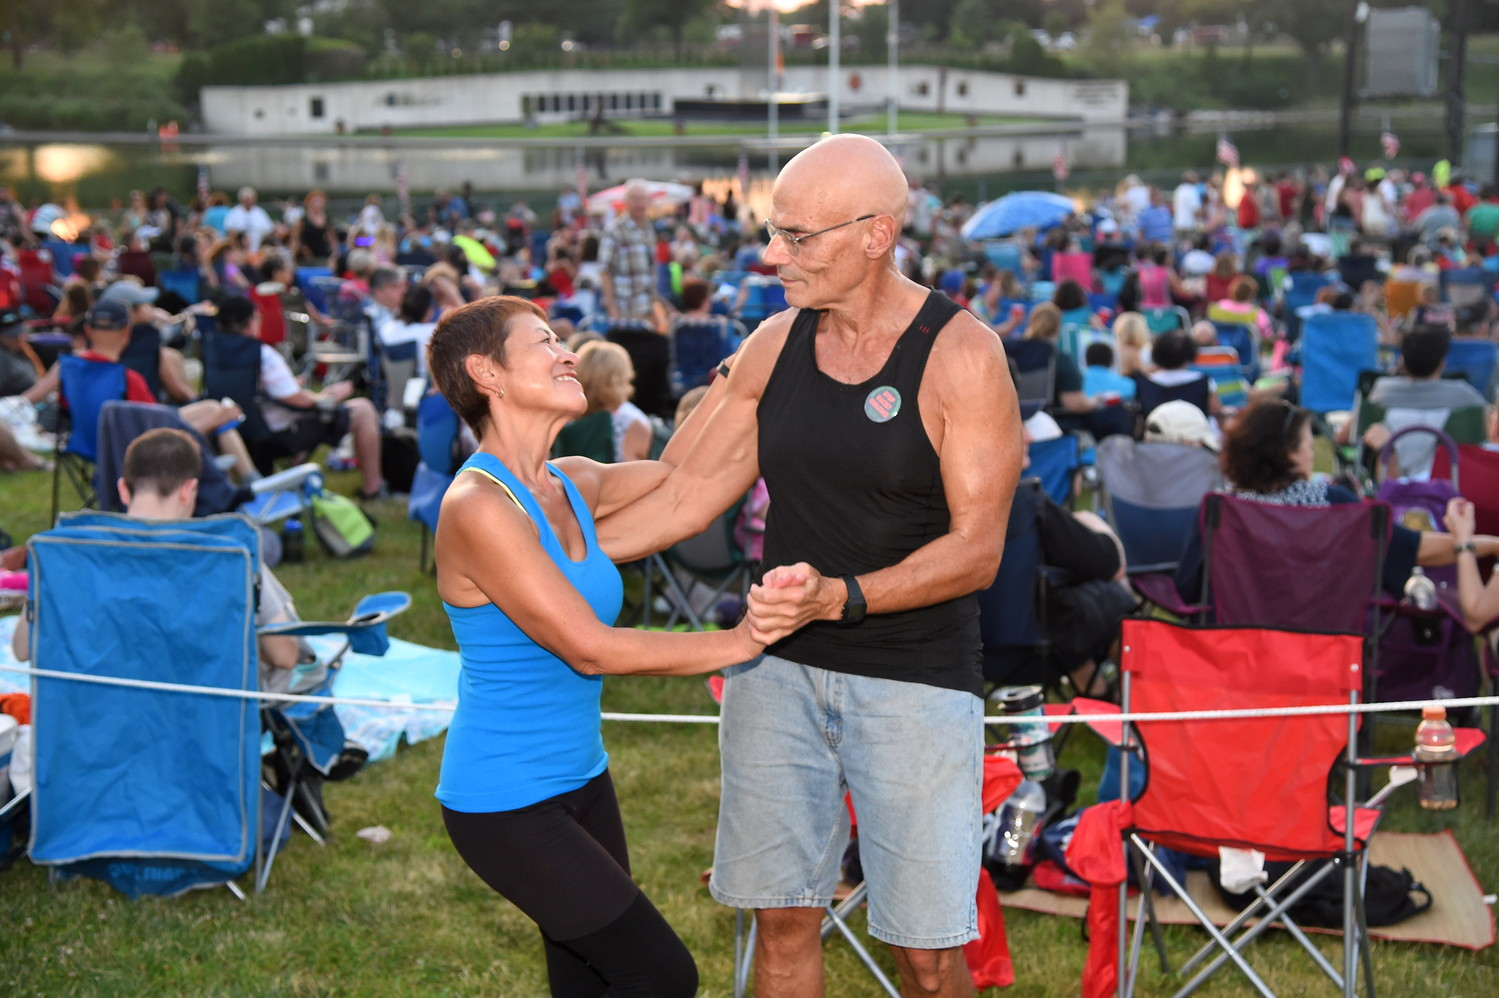 Diana Cohen and her husband, Hillel, of Rosedale, danced to classic 1970s pop hits as the sun set before the firework display.